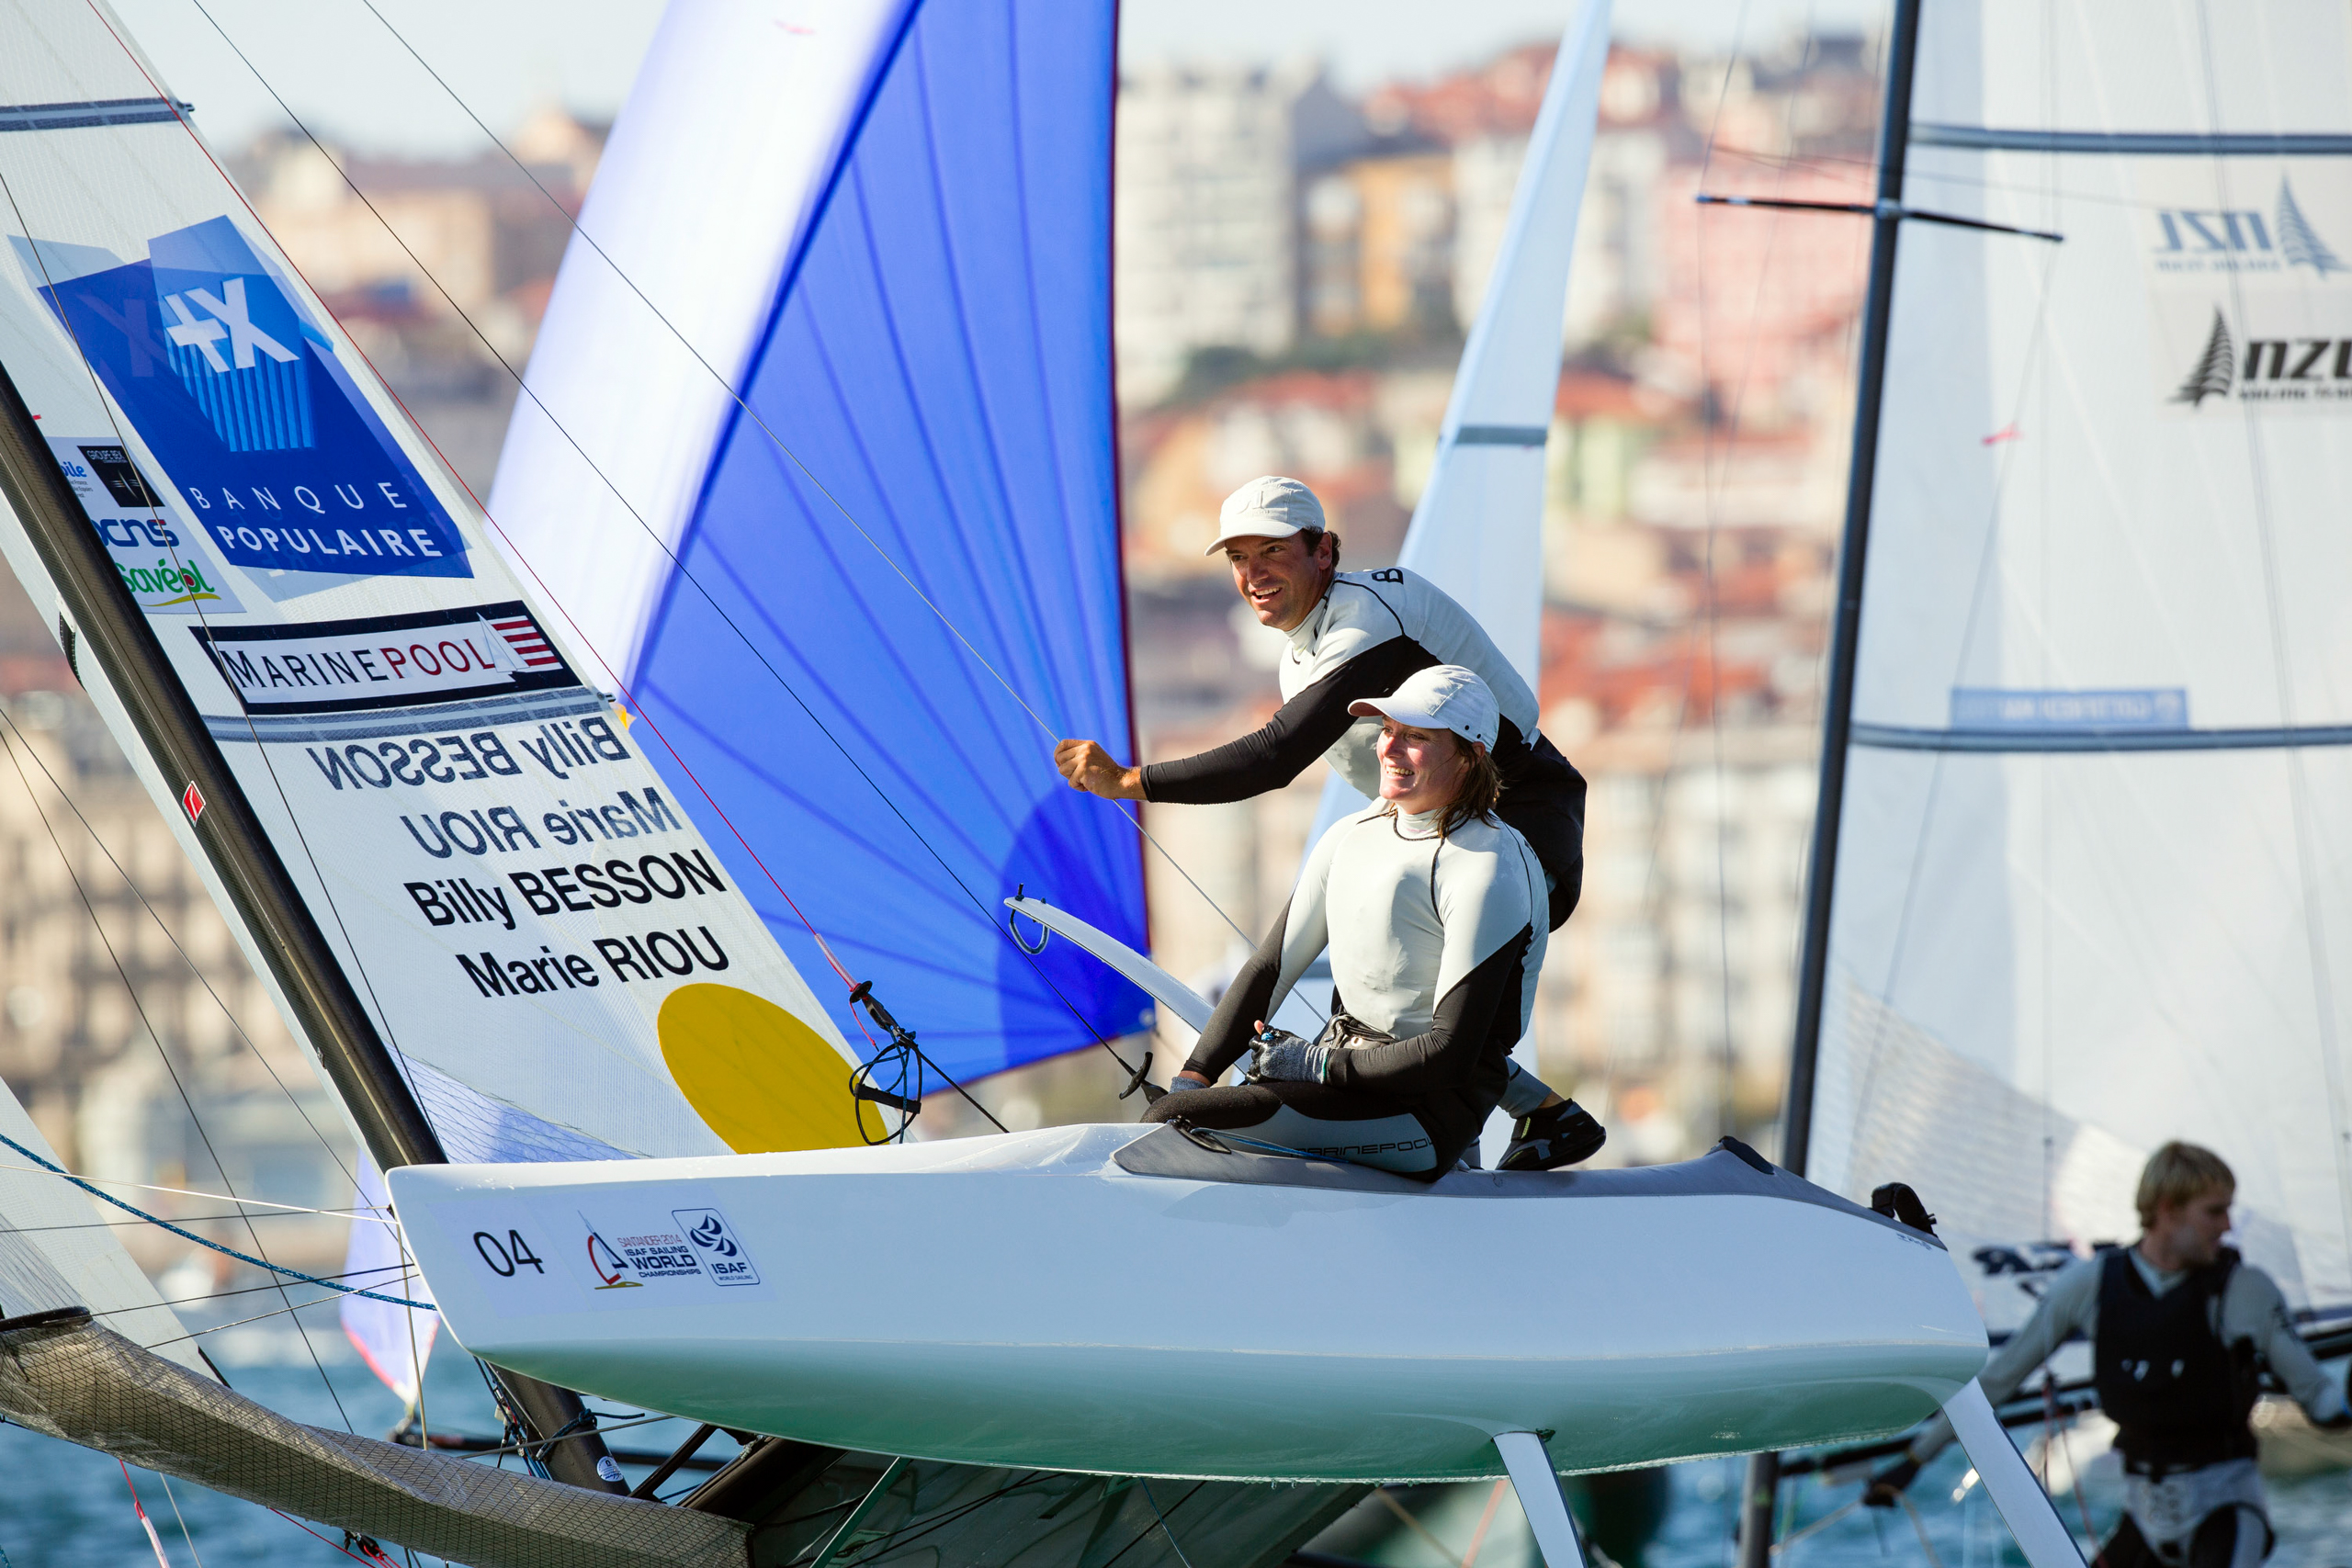 <strong>Billy Besson, Marie Riou, Sailing, France</strong>Sailing will debut a mixed event in Rio using a catamaran that seems to fly above the water. The biggest hurdle for this French pair, who have won four straight world titles, may be Rio's polluted Guanabara Bay.